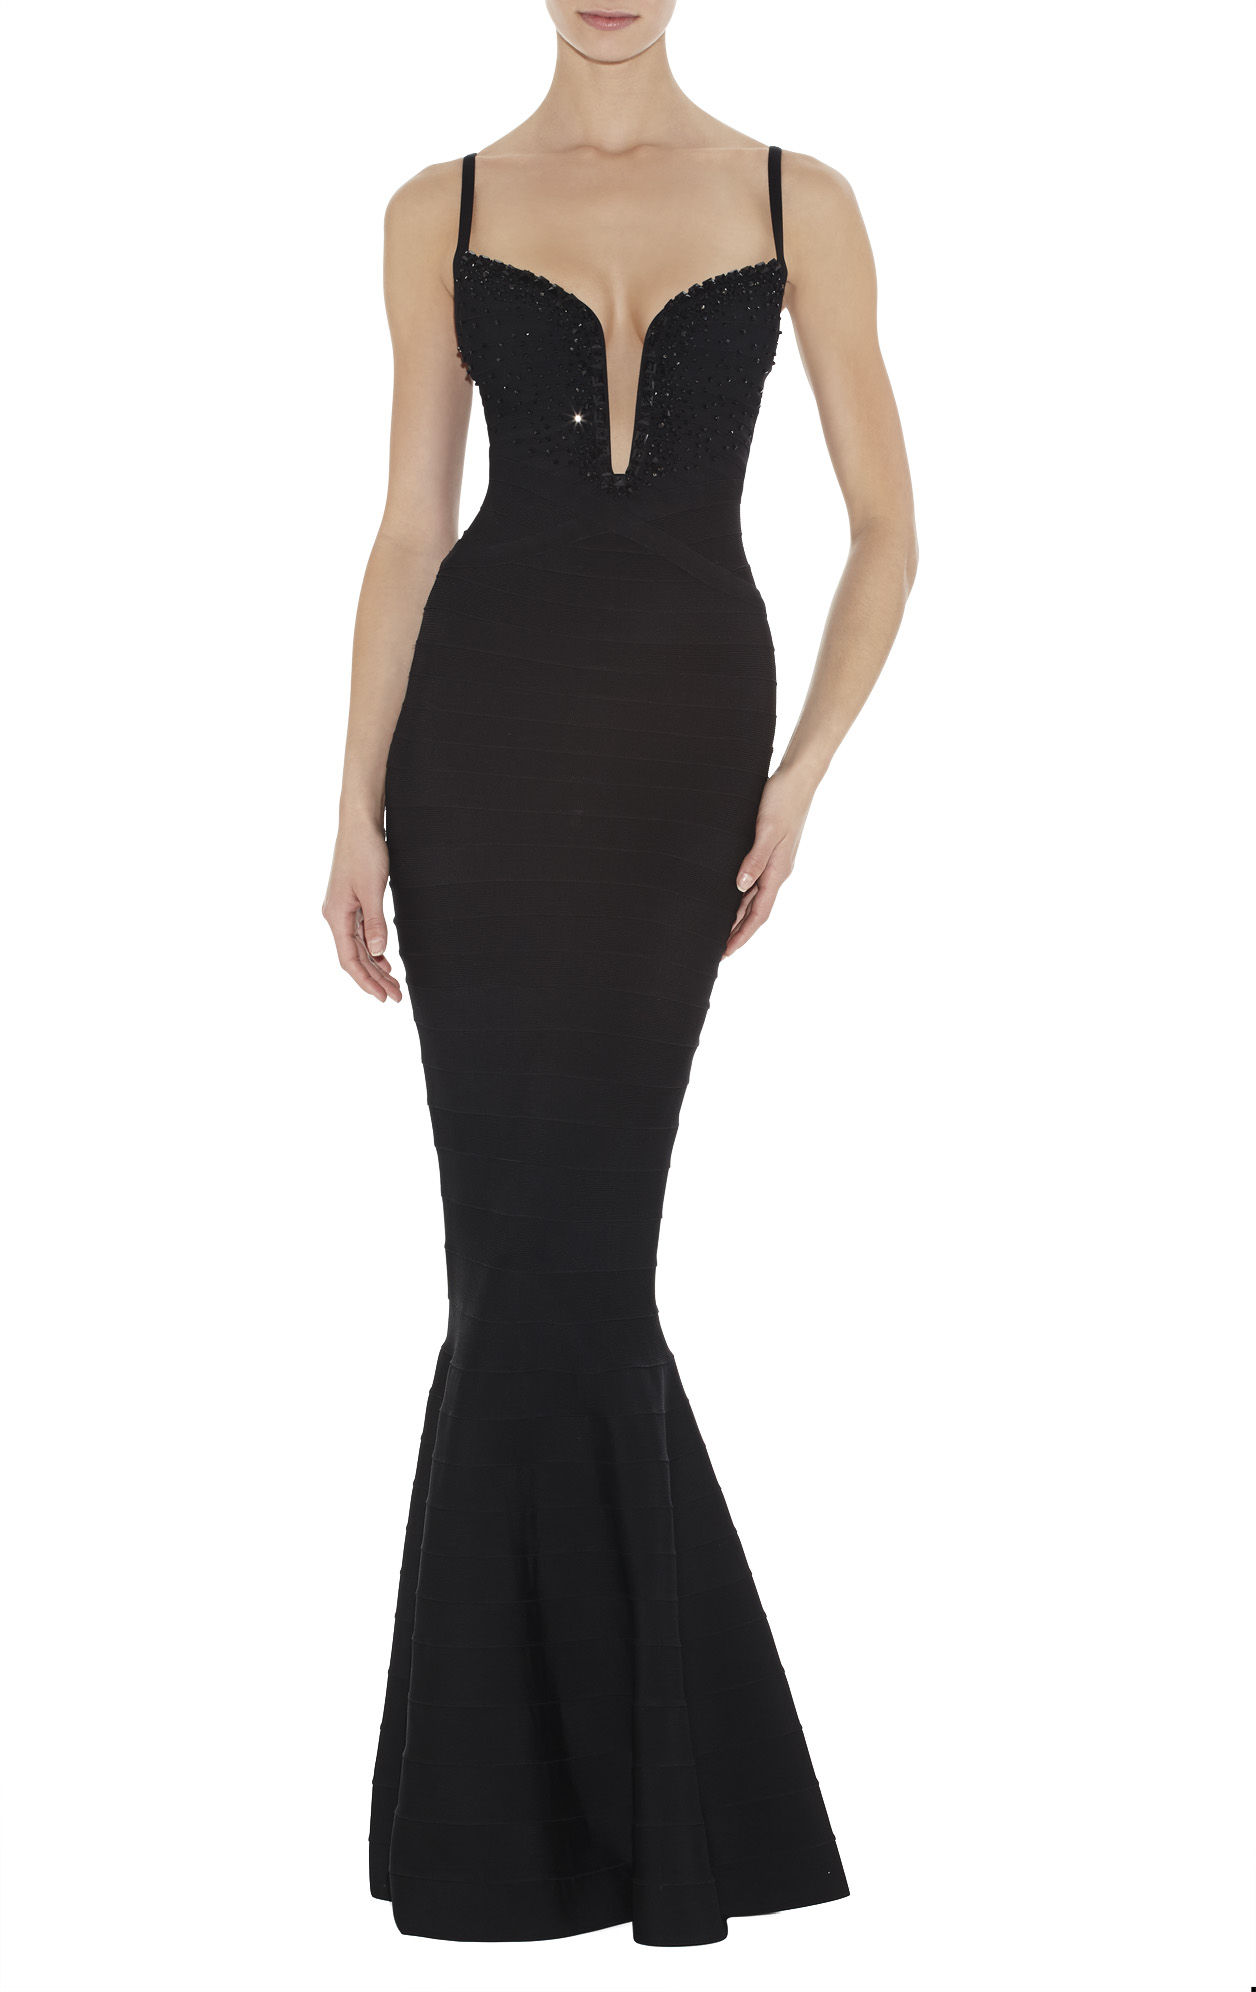 Herve Leger Black Beaded V Neck Halter Gown